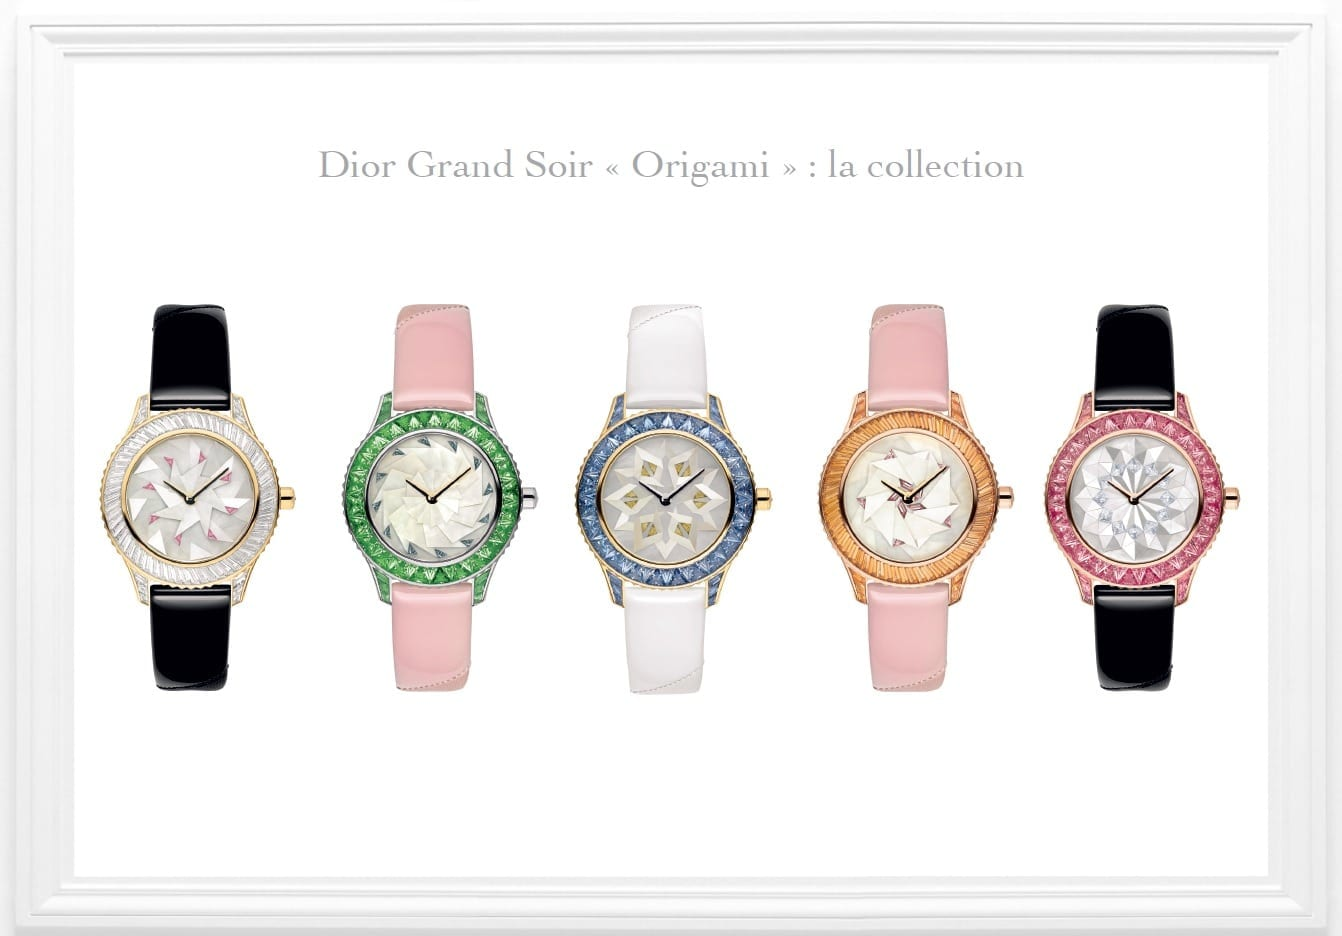 Dior-Grand-Soir-Origami-collection